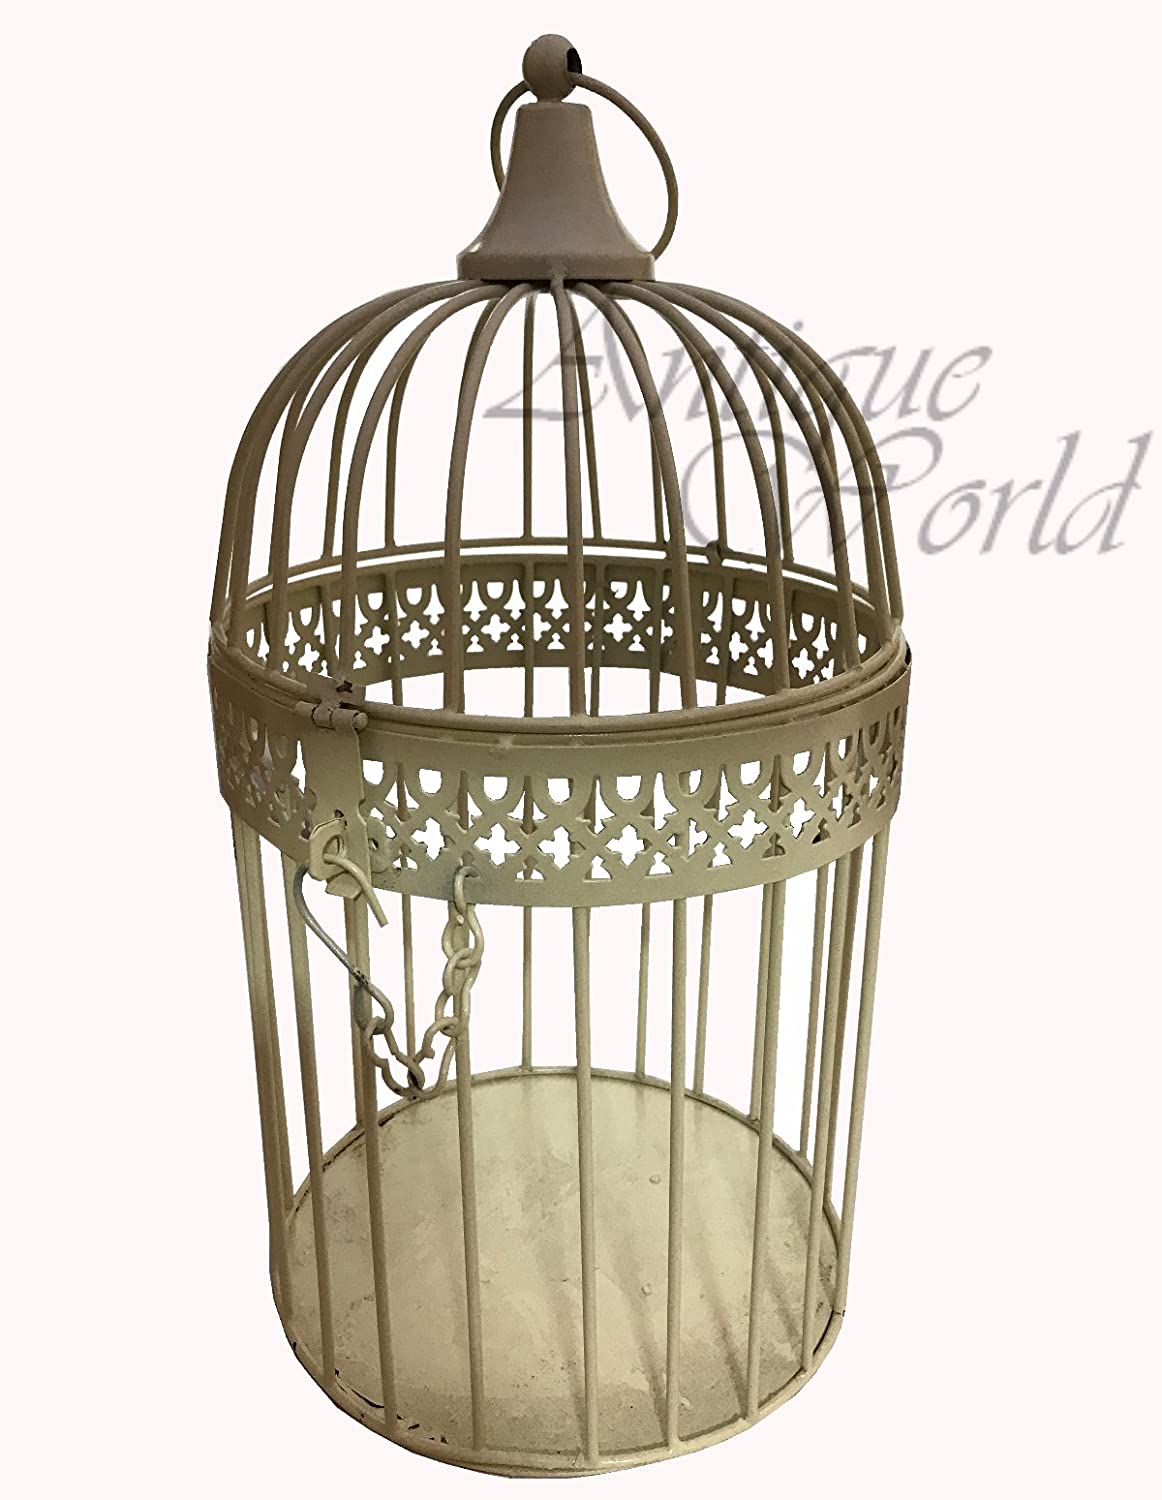 Antiques World Medium Size Vintage Theme Look Bird Cage Made Of Metal Home Art Decor Collectible AWUSASI 07